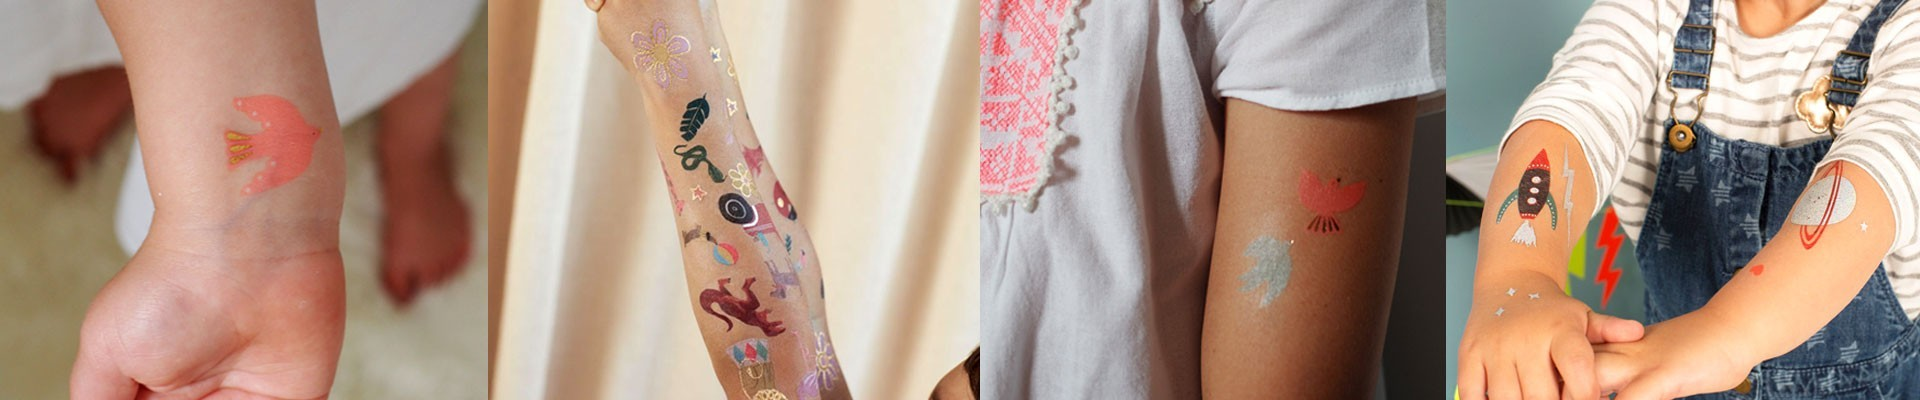 Temporary Tattoos and jewelry from Princesse Ilou